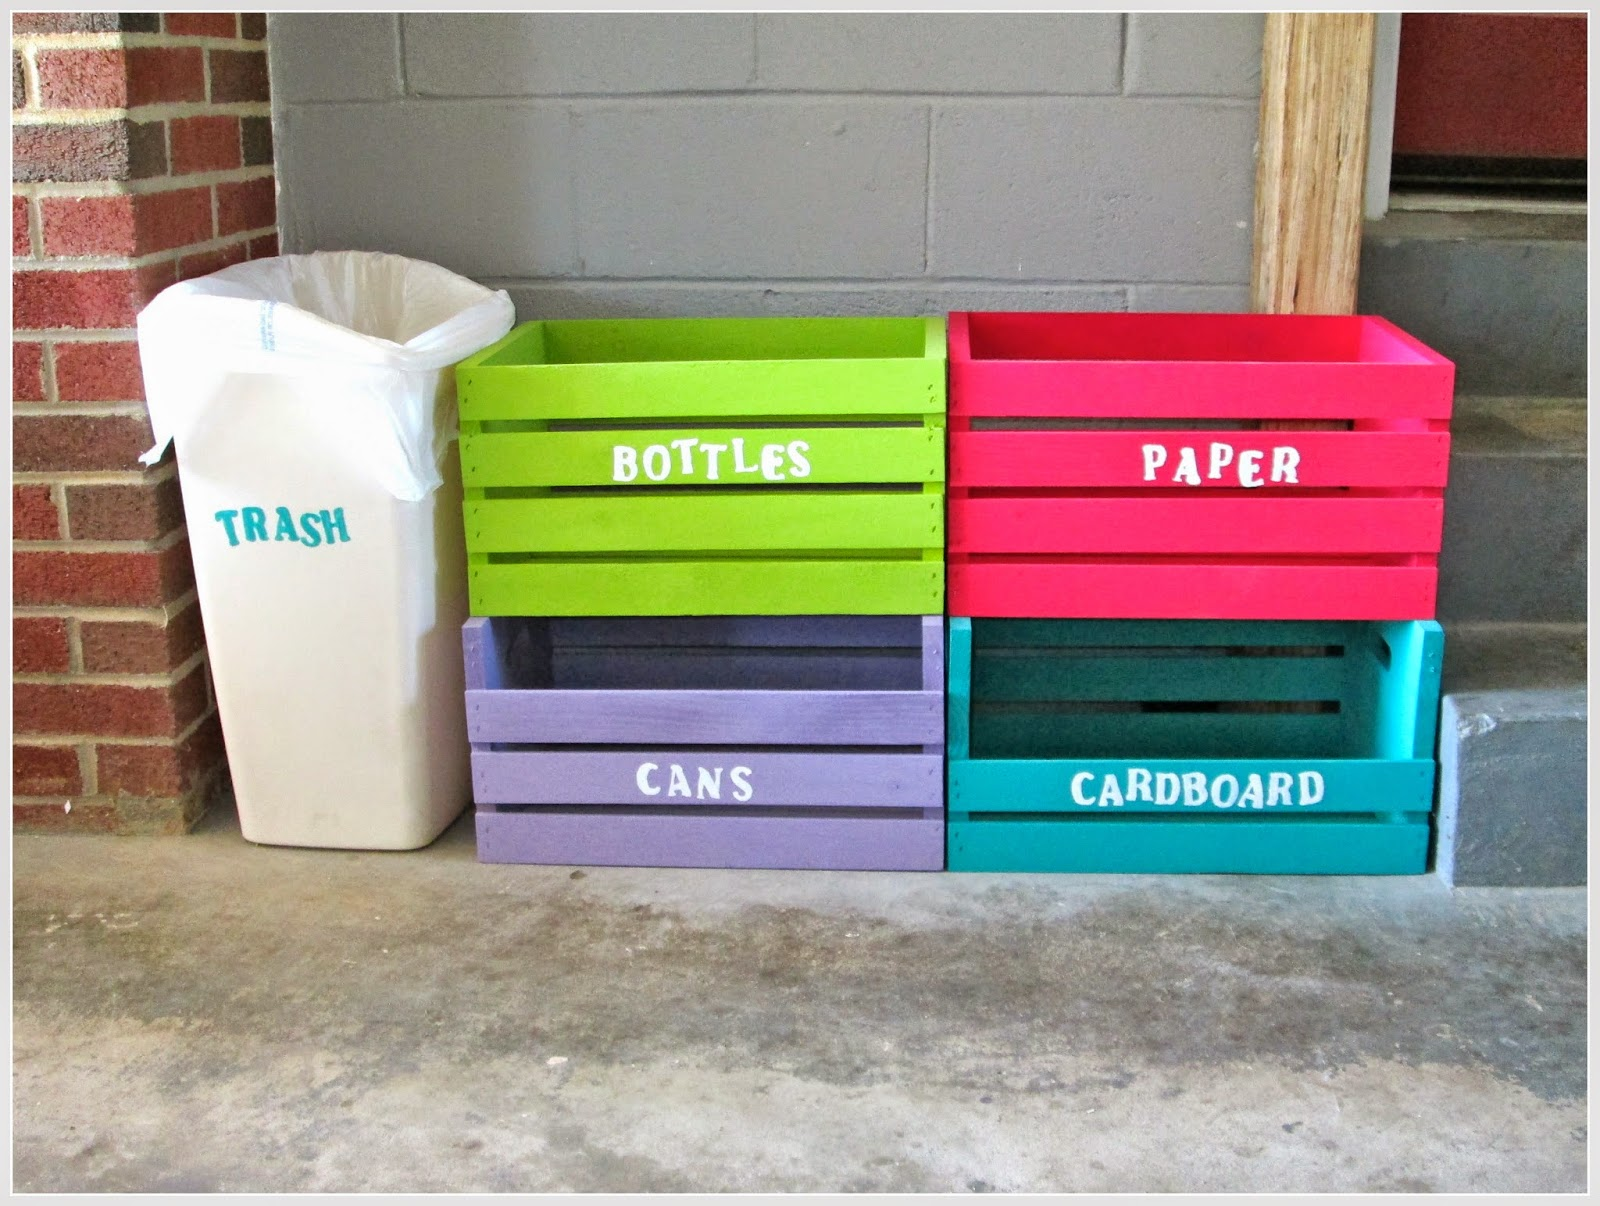 Laura 39 s plans easy d i y home recycling center for Creative recycling ideas for the home